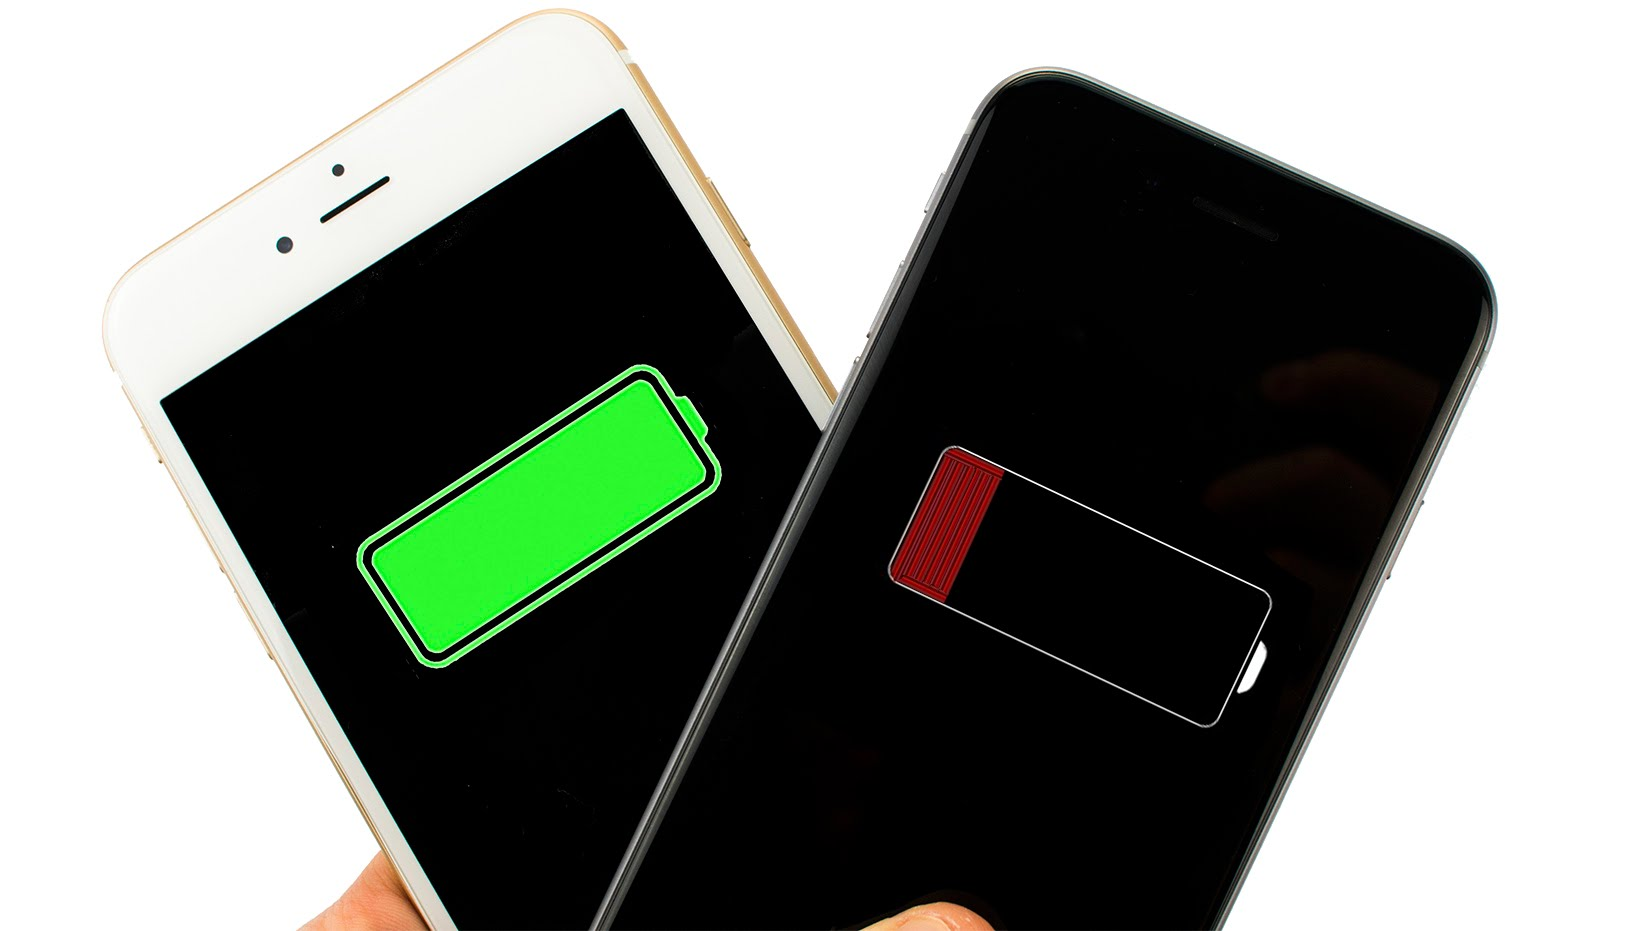 How to claim your free iPhone battery replacement